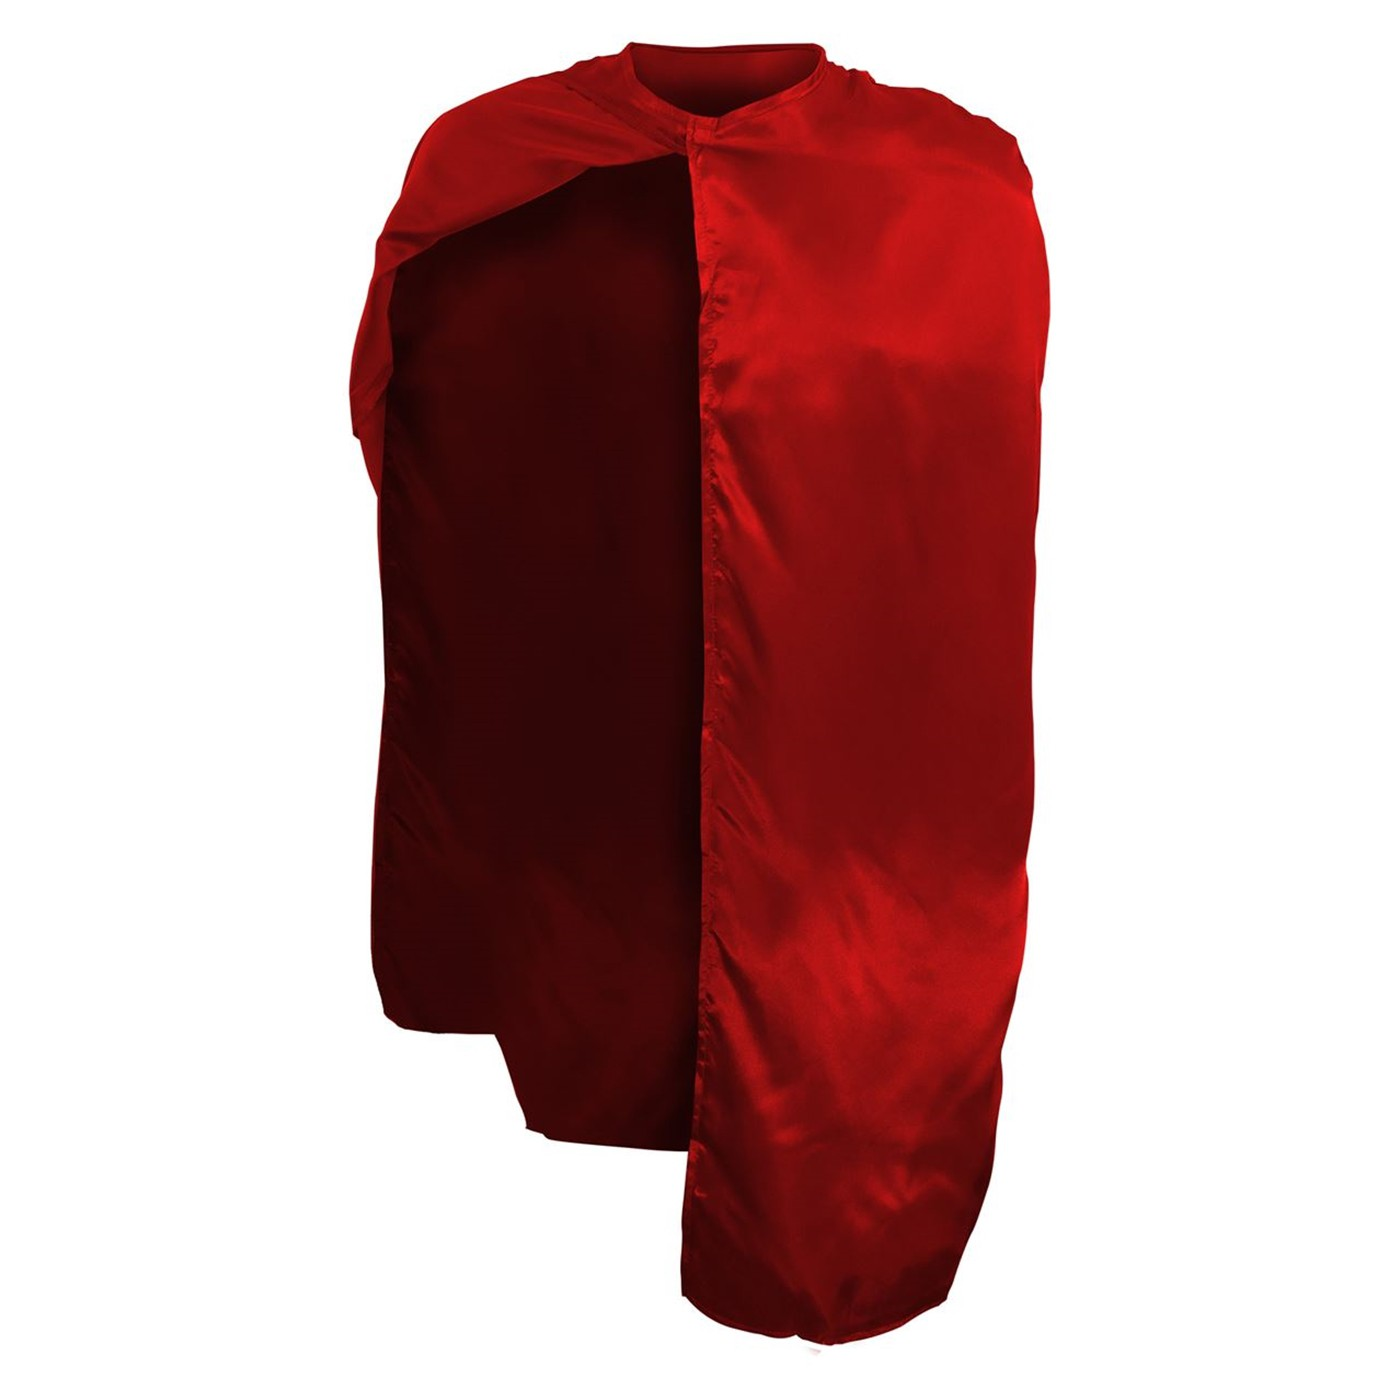 Adult Costume Red Hero Cape